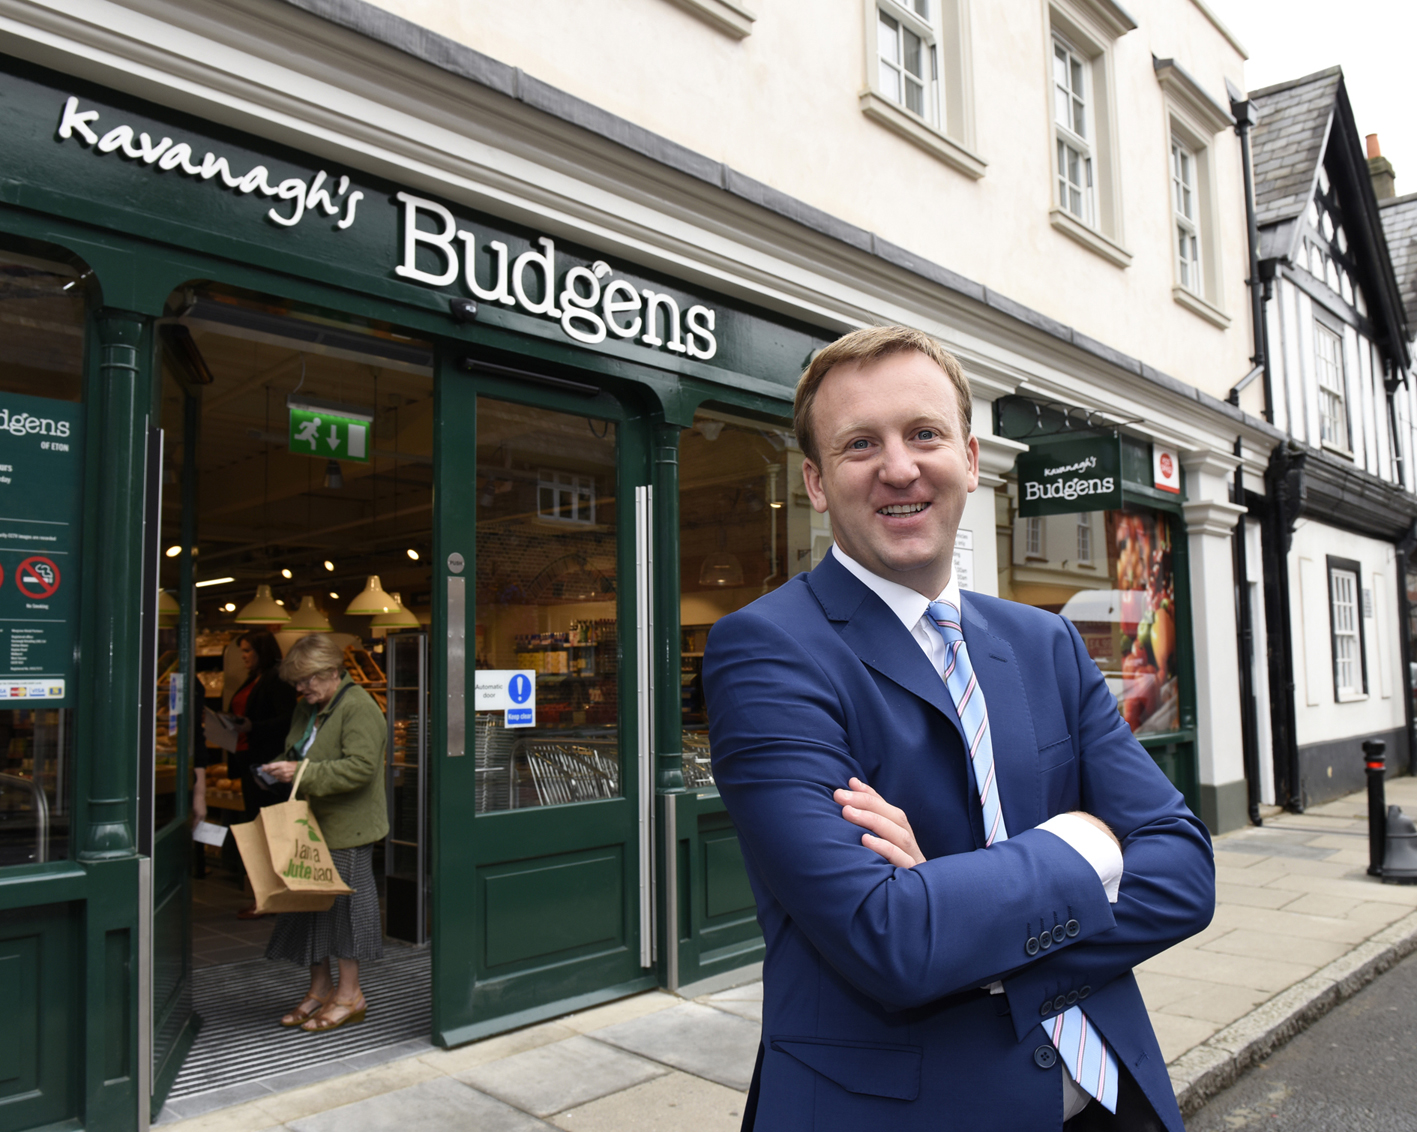 Noel Kavanagh on the opening day of his new Budgens store in Eton